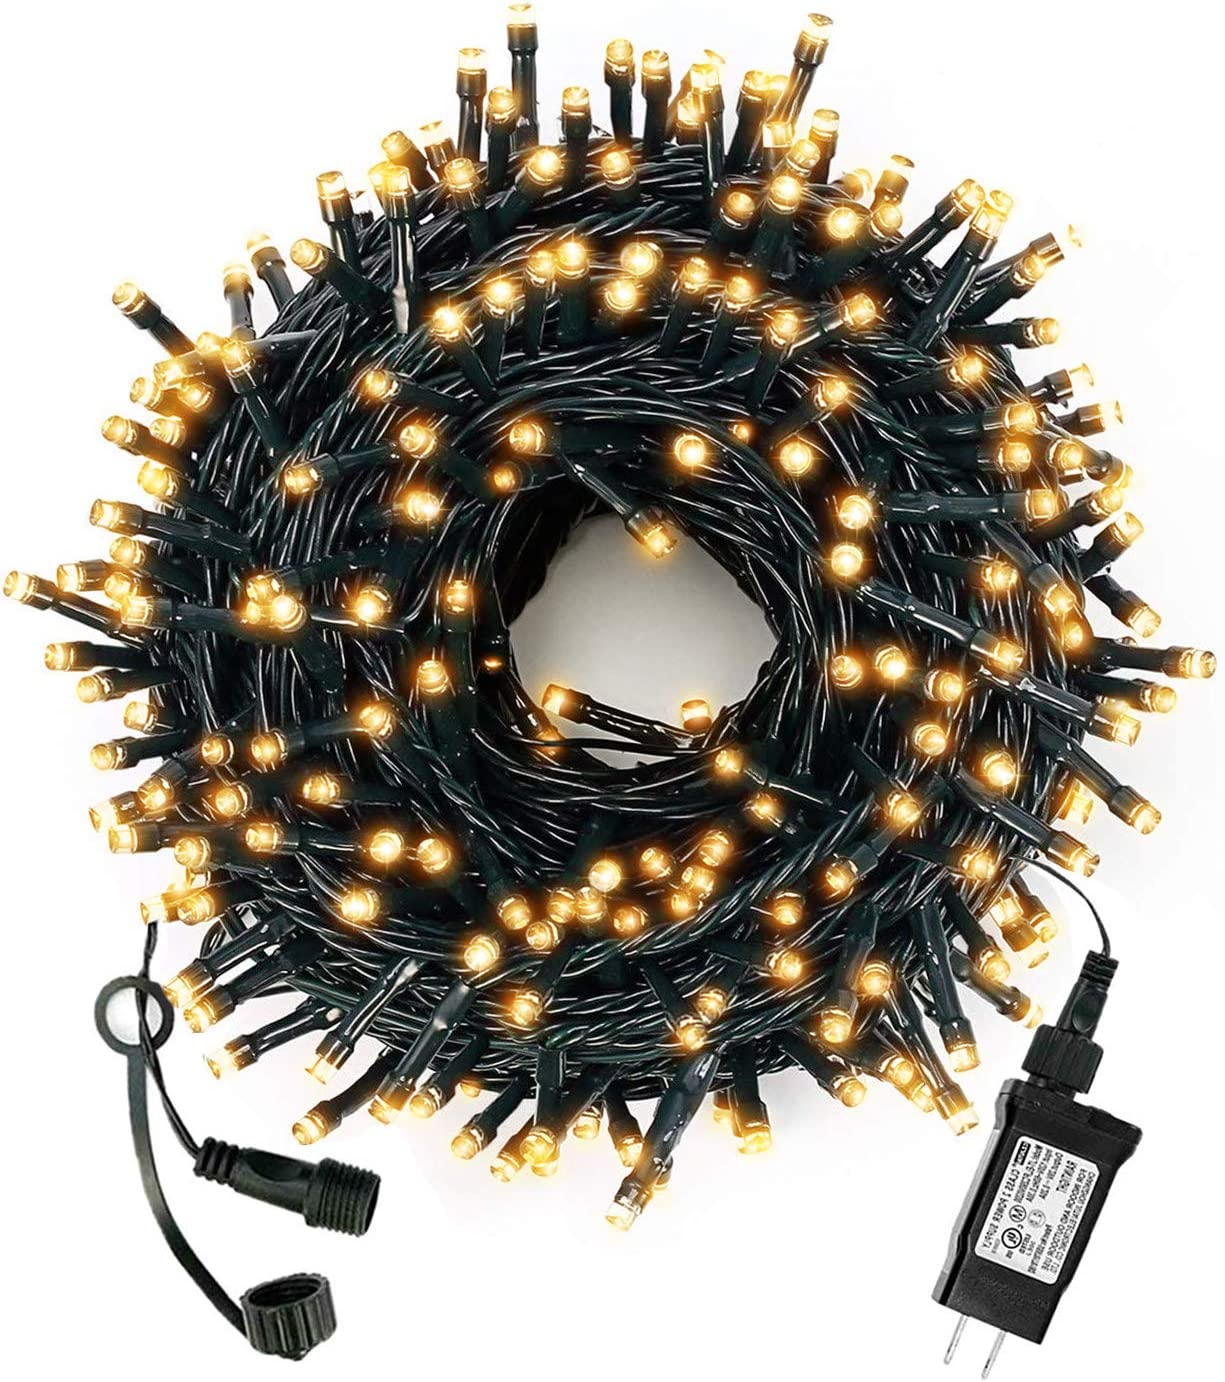 Green Convenience Christmas String Lights 108ft 300 LED Indoor String Lights with Plug,8 Modes Lights Waterproof Outdoor Indoor for Christmas,Party,Tree,Window, Wedding Decoration (Warm White)